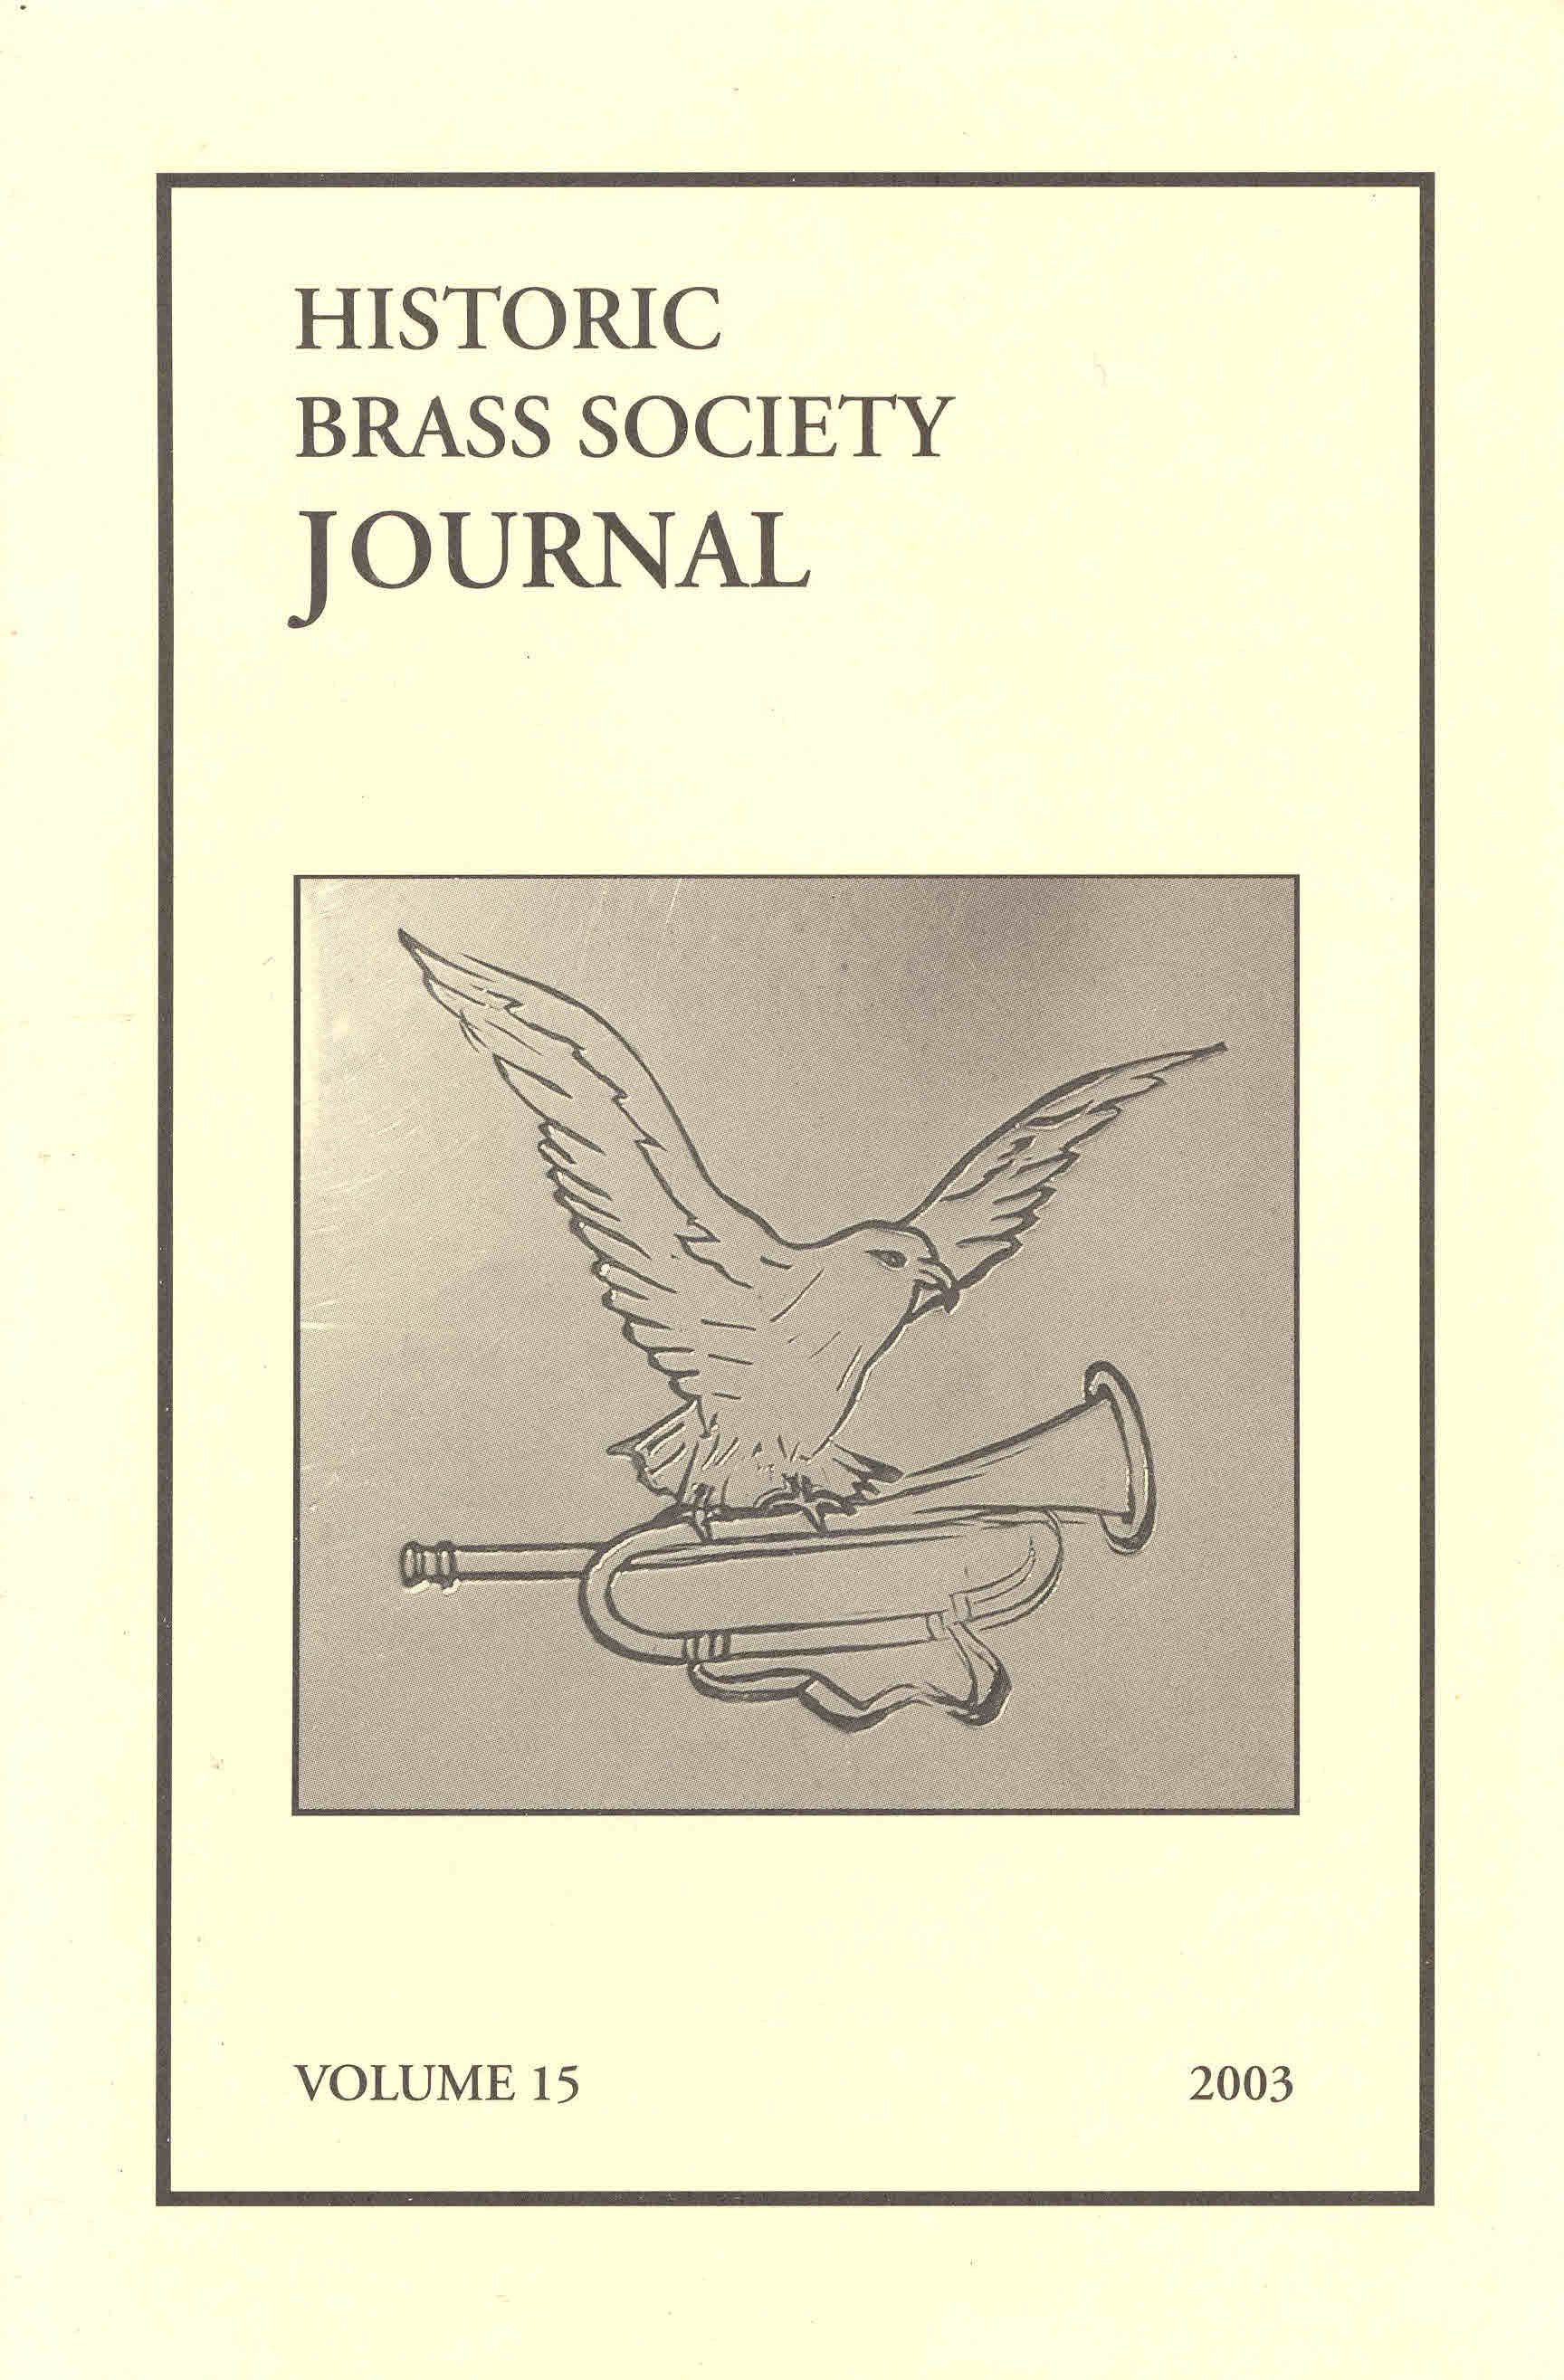 Historic Brass Journal - Volume 15 - 2003